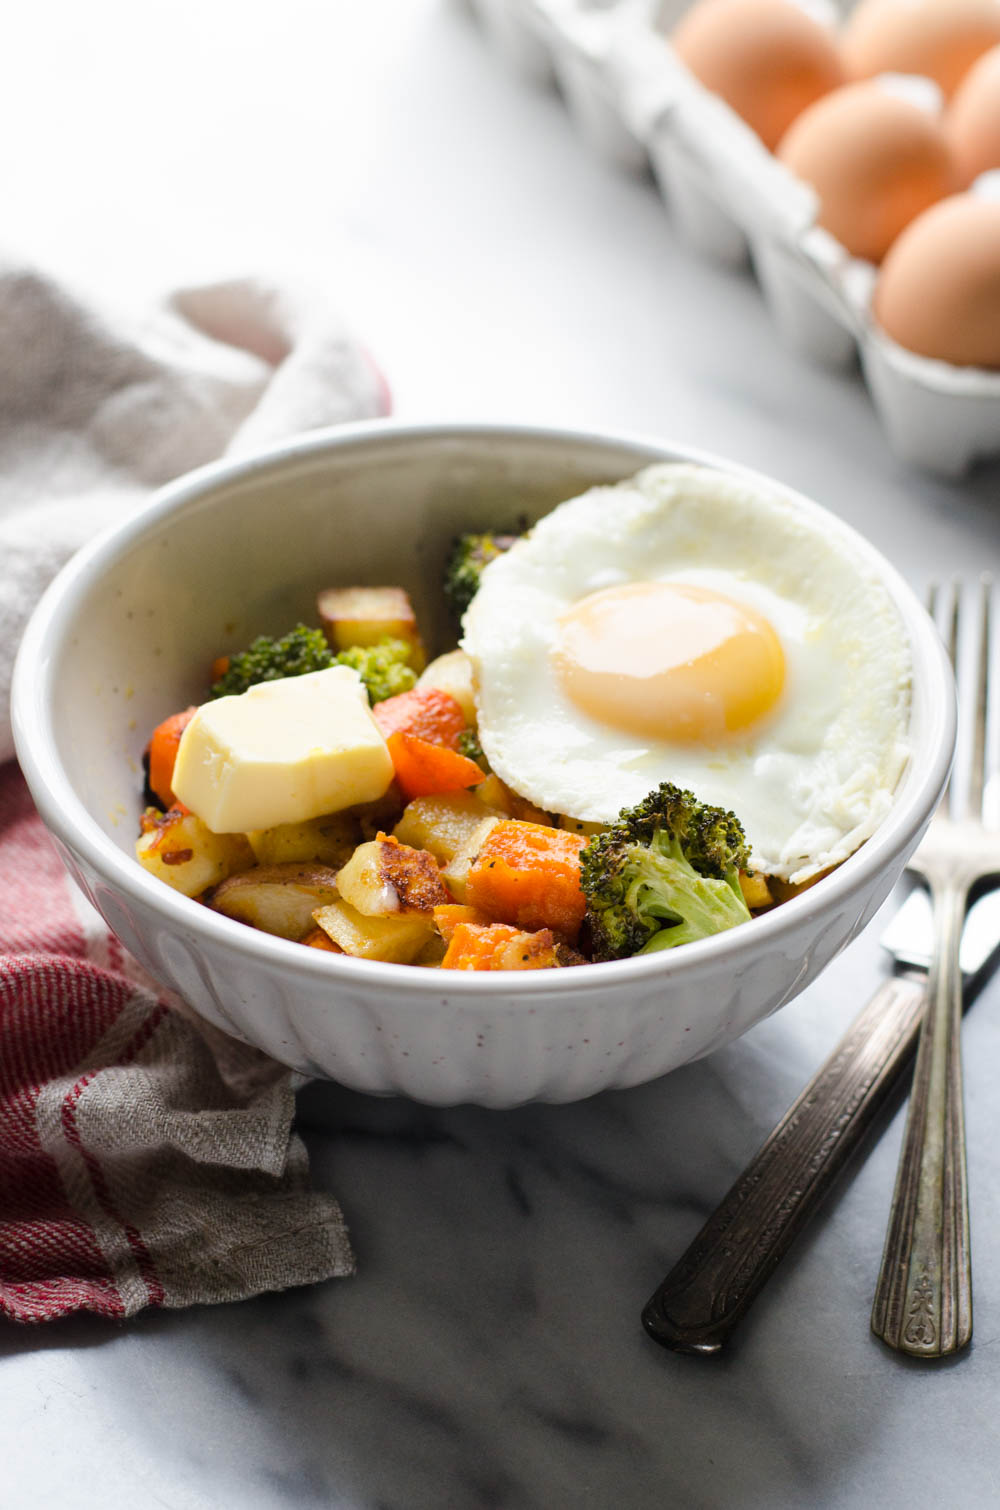 Roasted Veggie Breakfast Bowls (Paleo and Whole30 Friendly)